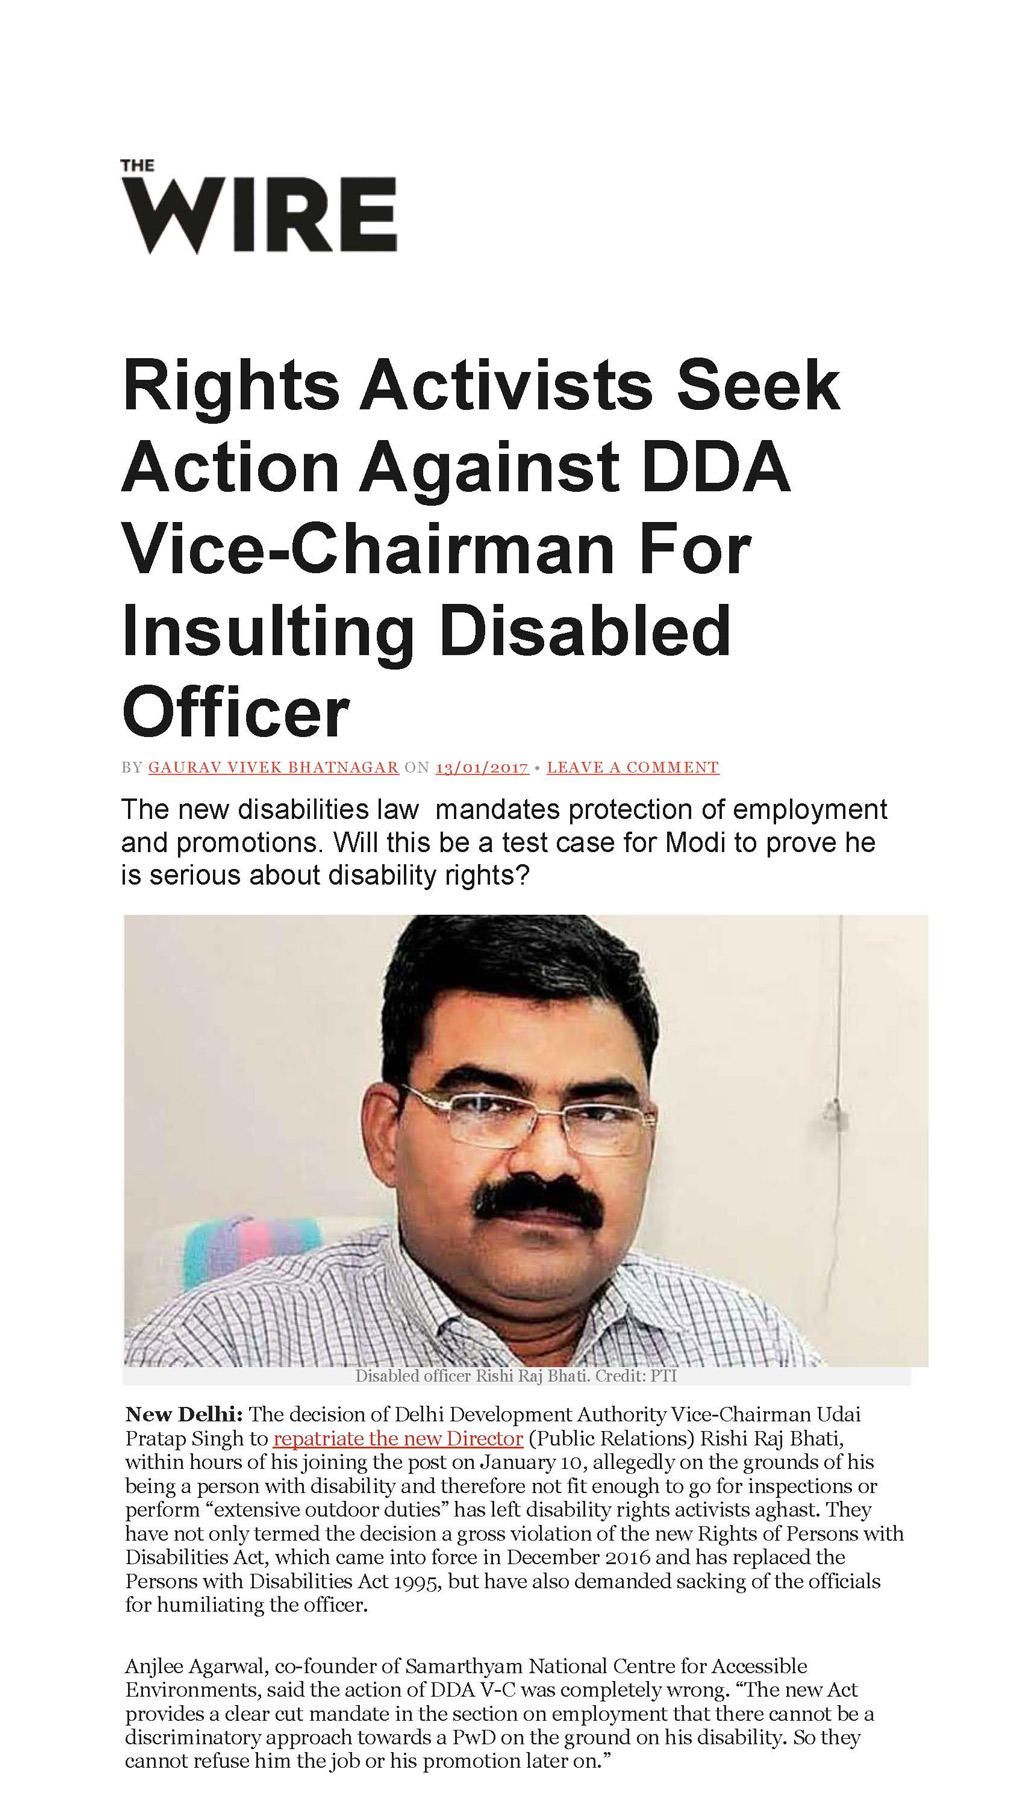 Rights Activists Seek Action Against DDA Vice-Chairman For Insulting Disabled Officer